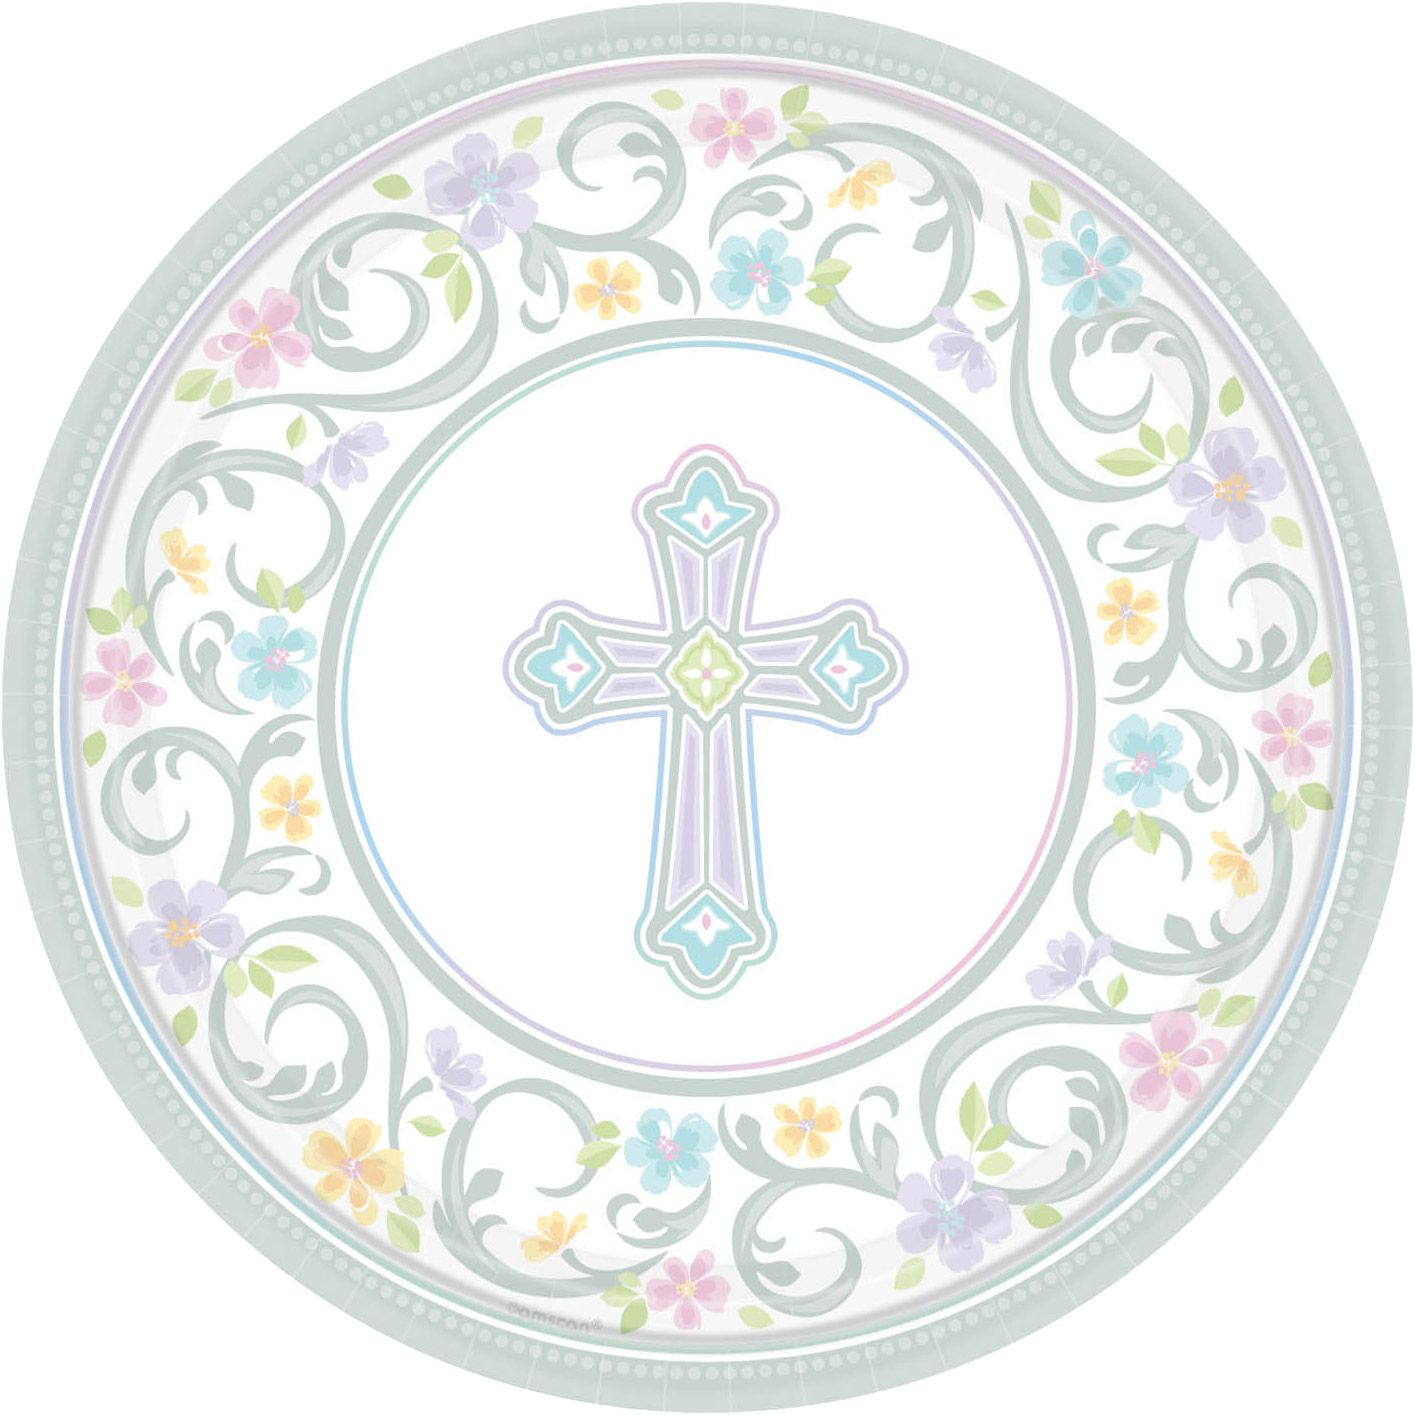 "Religious Party Supplies 10"" Luncheon Plates (18 Pack) BB729420"